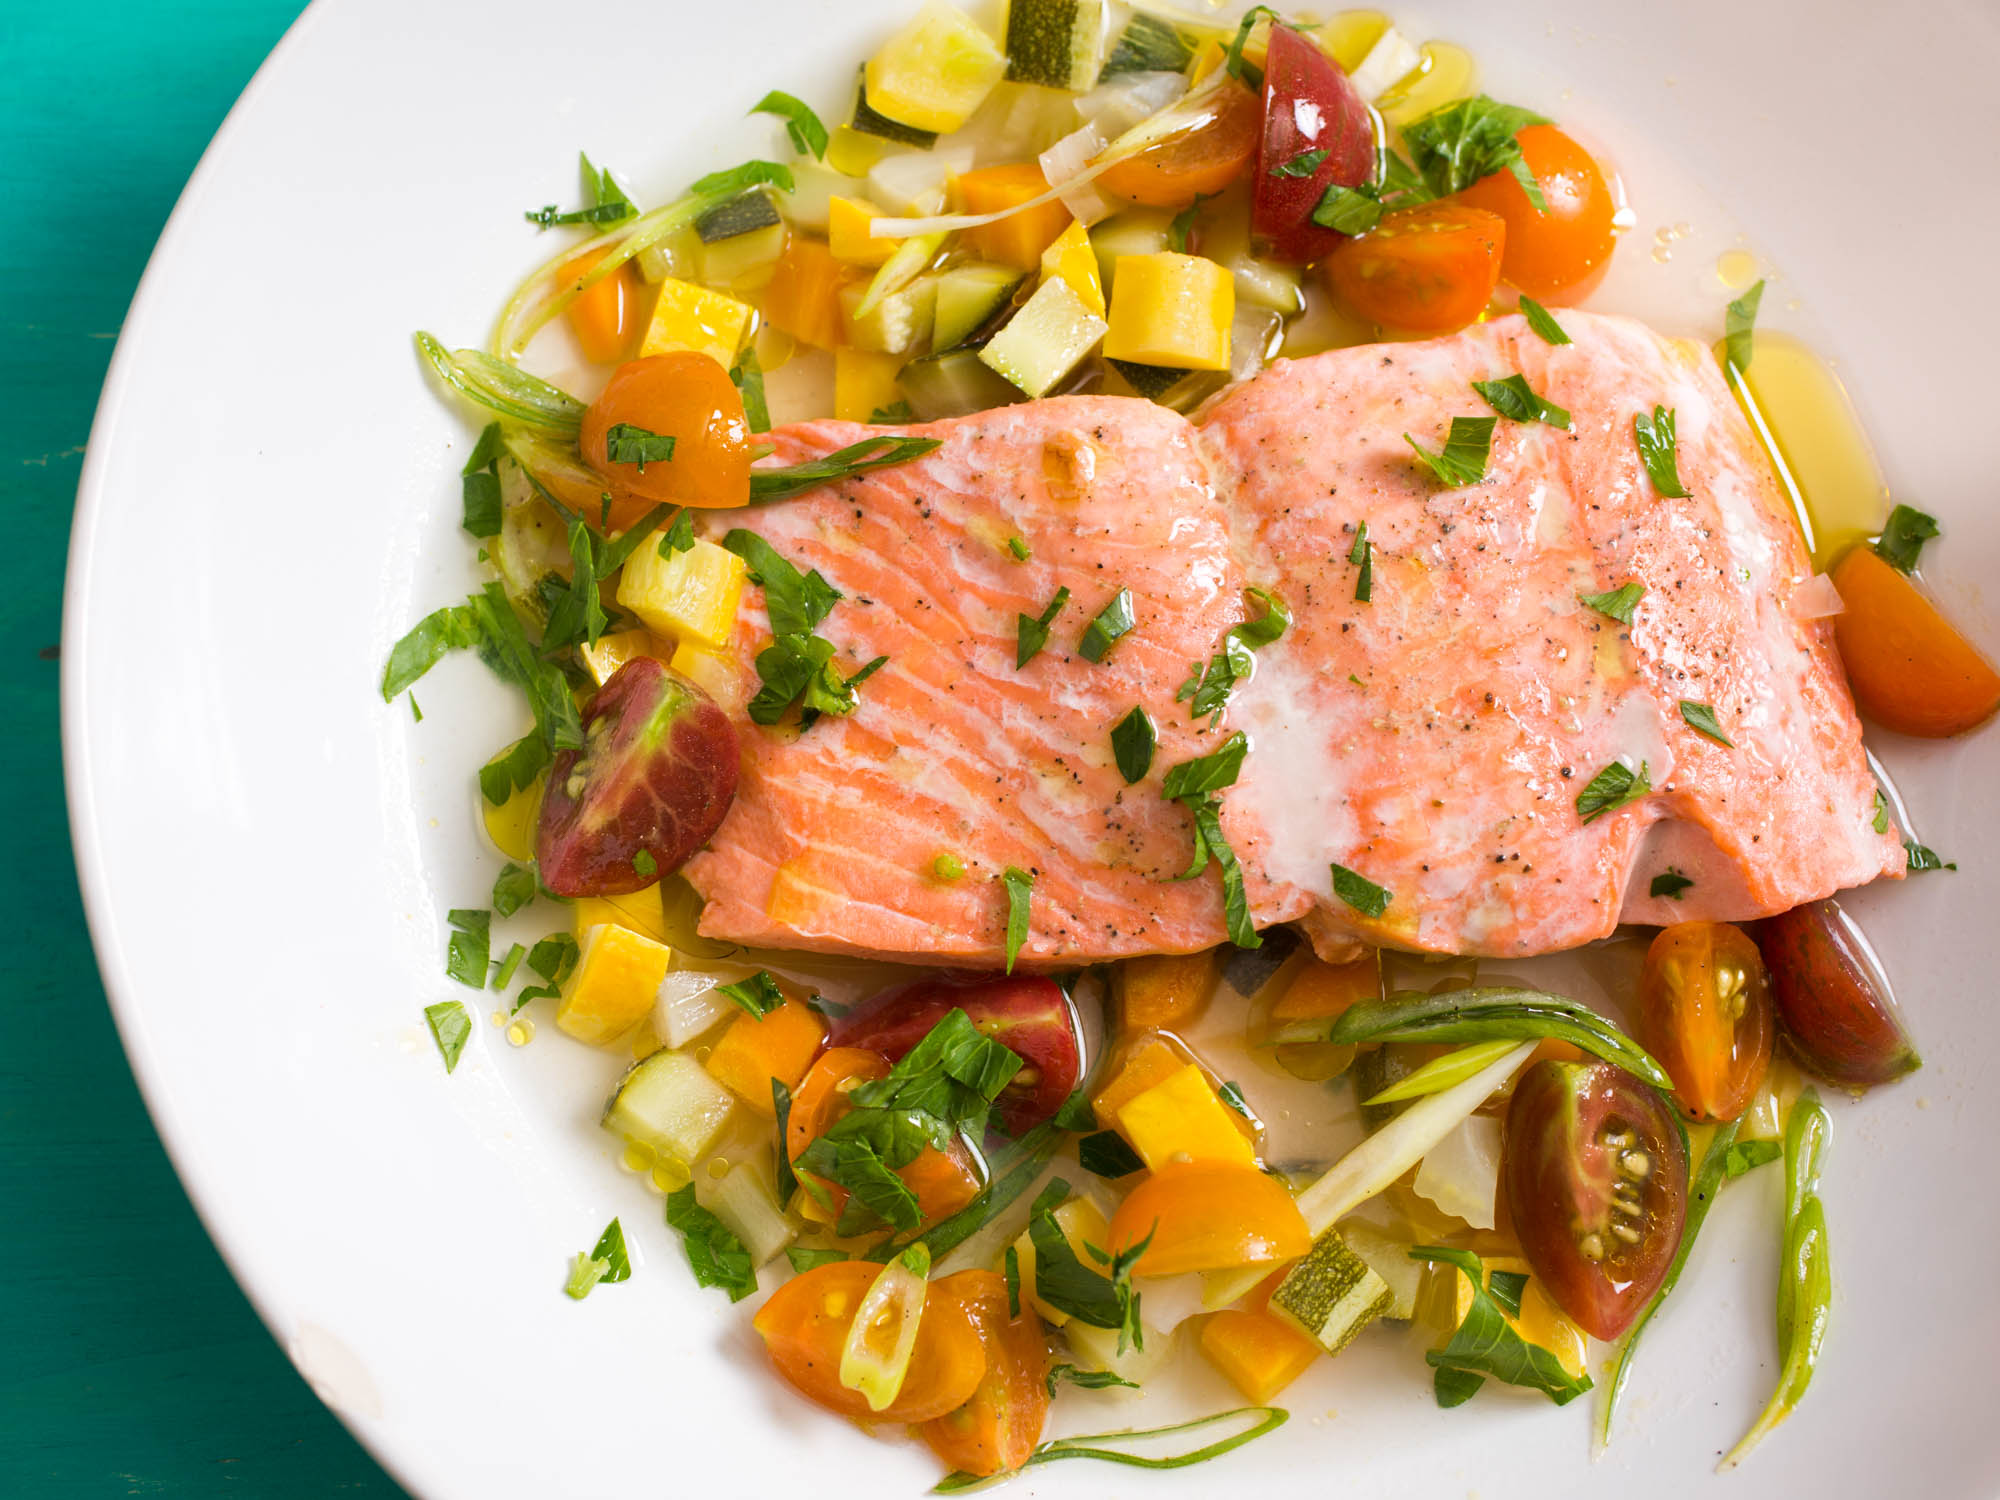 The Best Side Dishes for Salmon